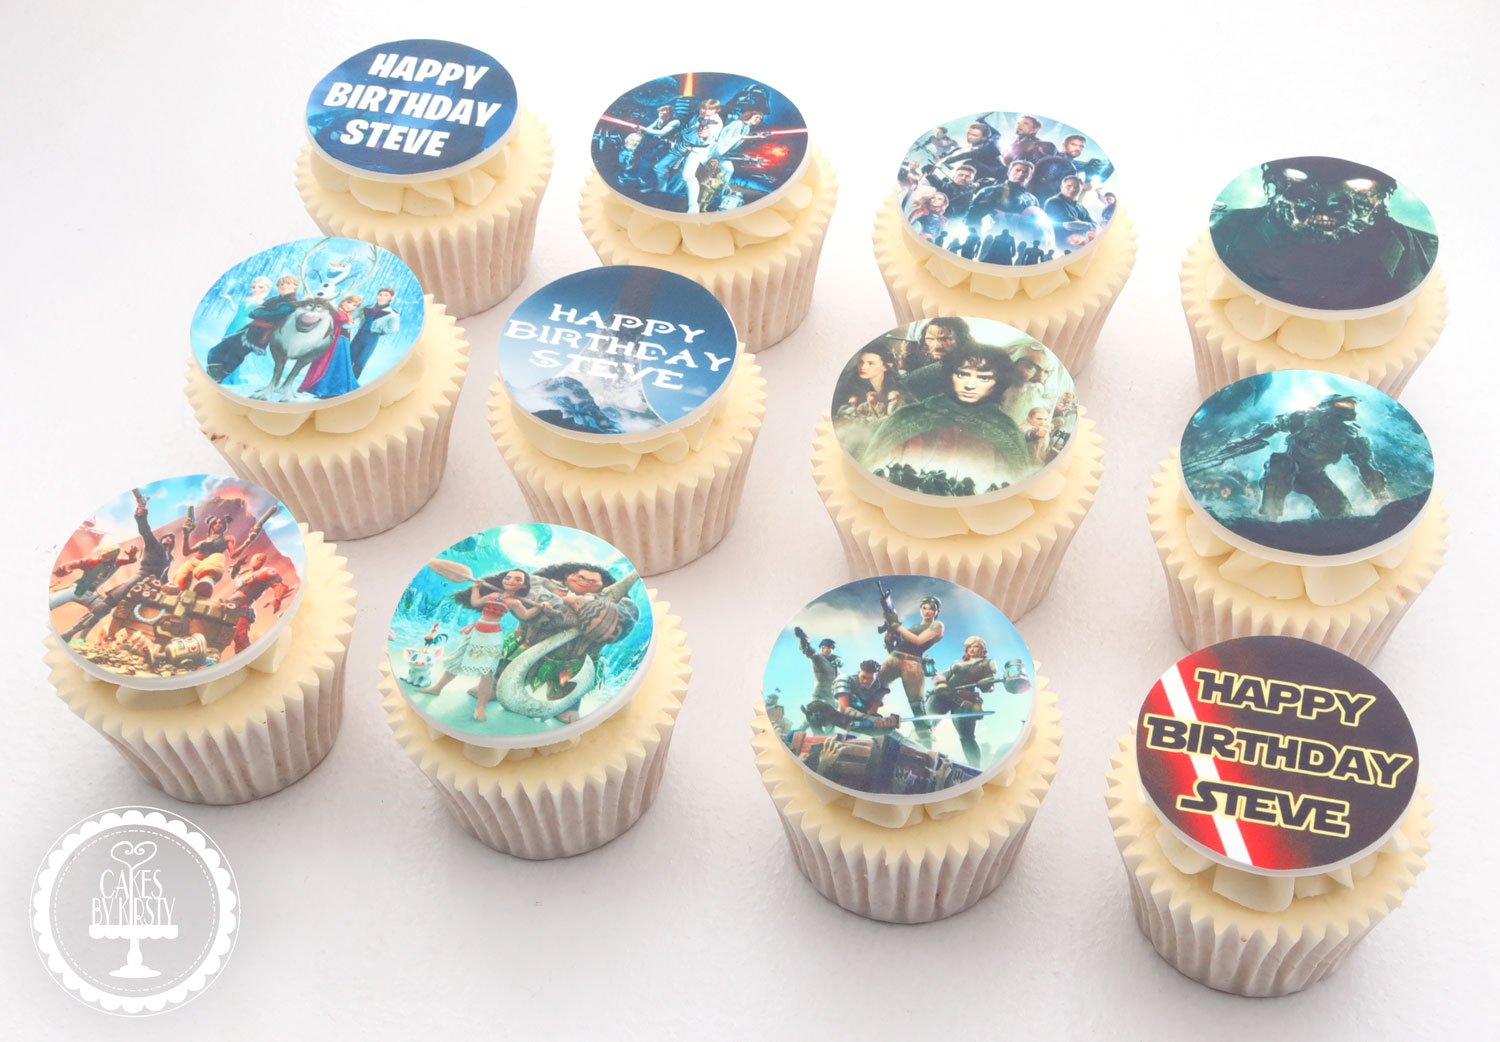 20201017 - Gaming Movie Cupcakes